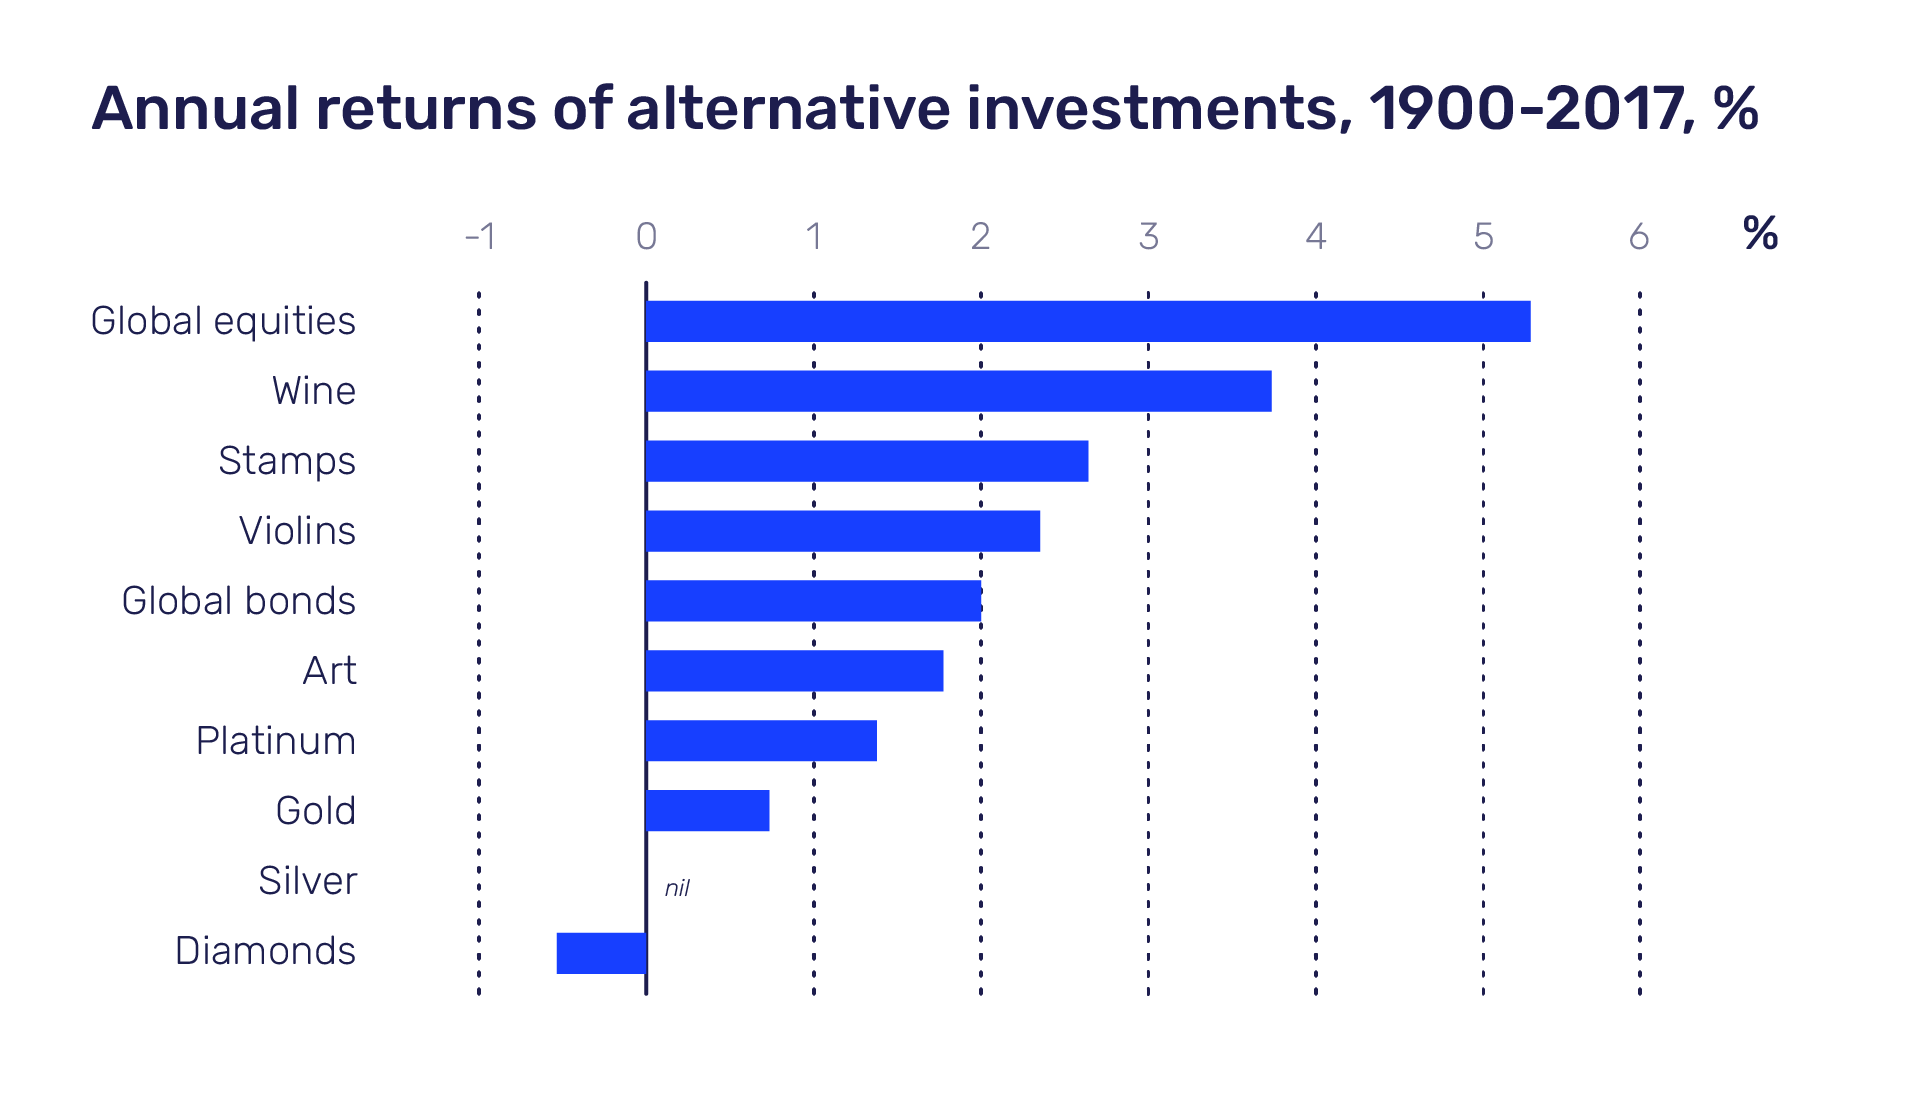 Annual return of alternative investments